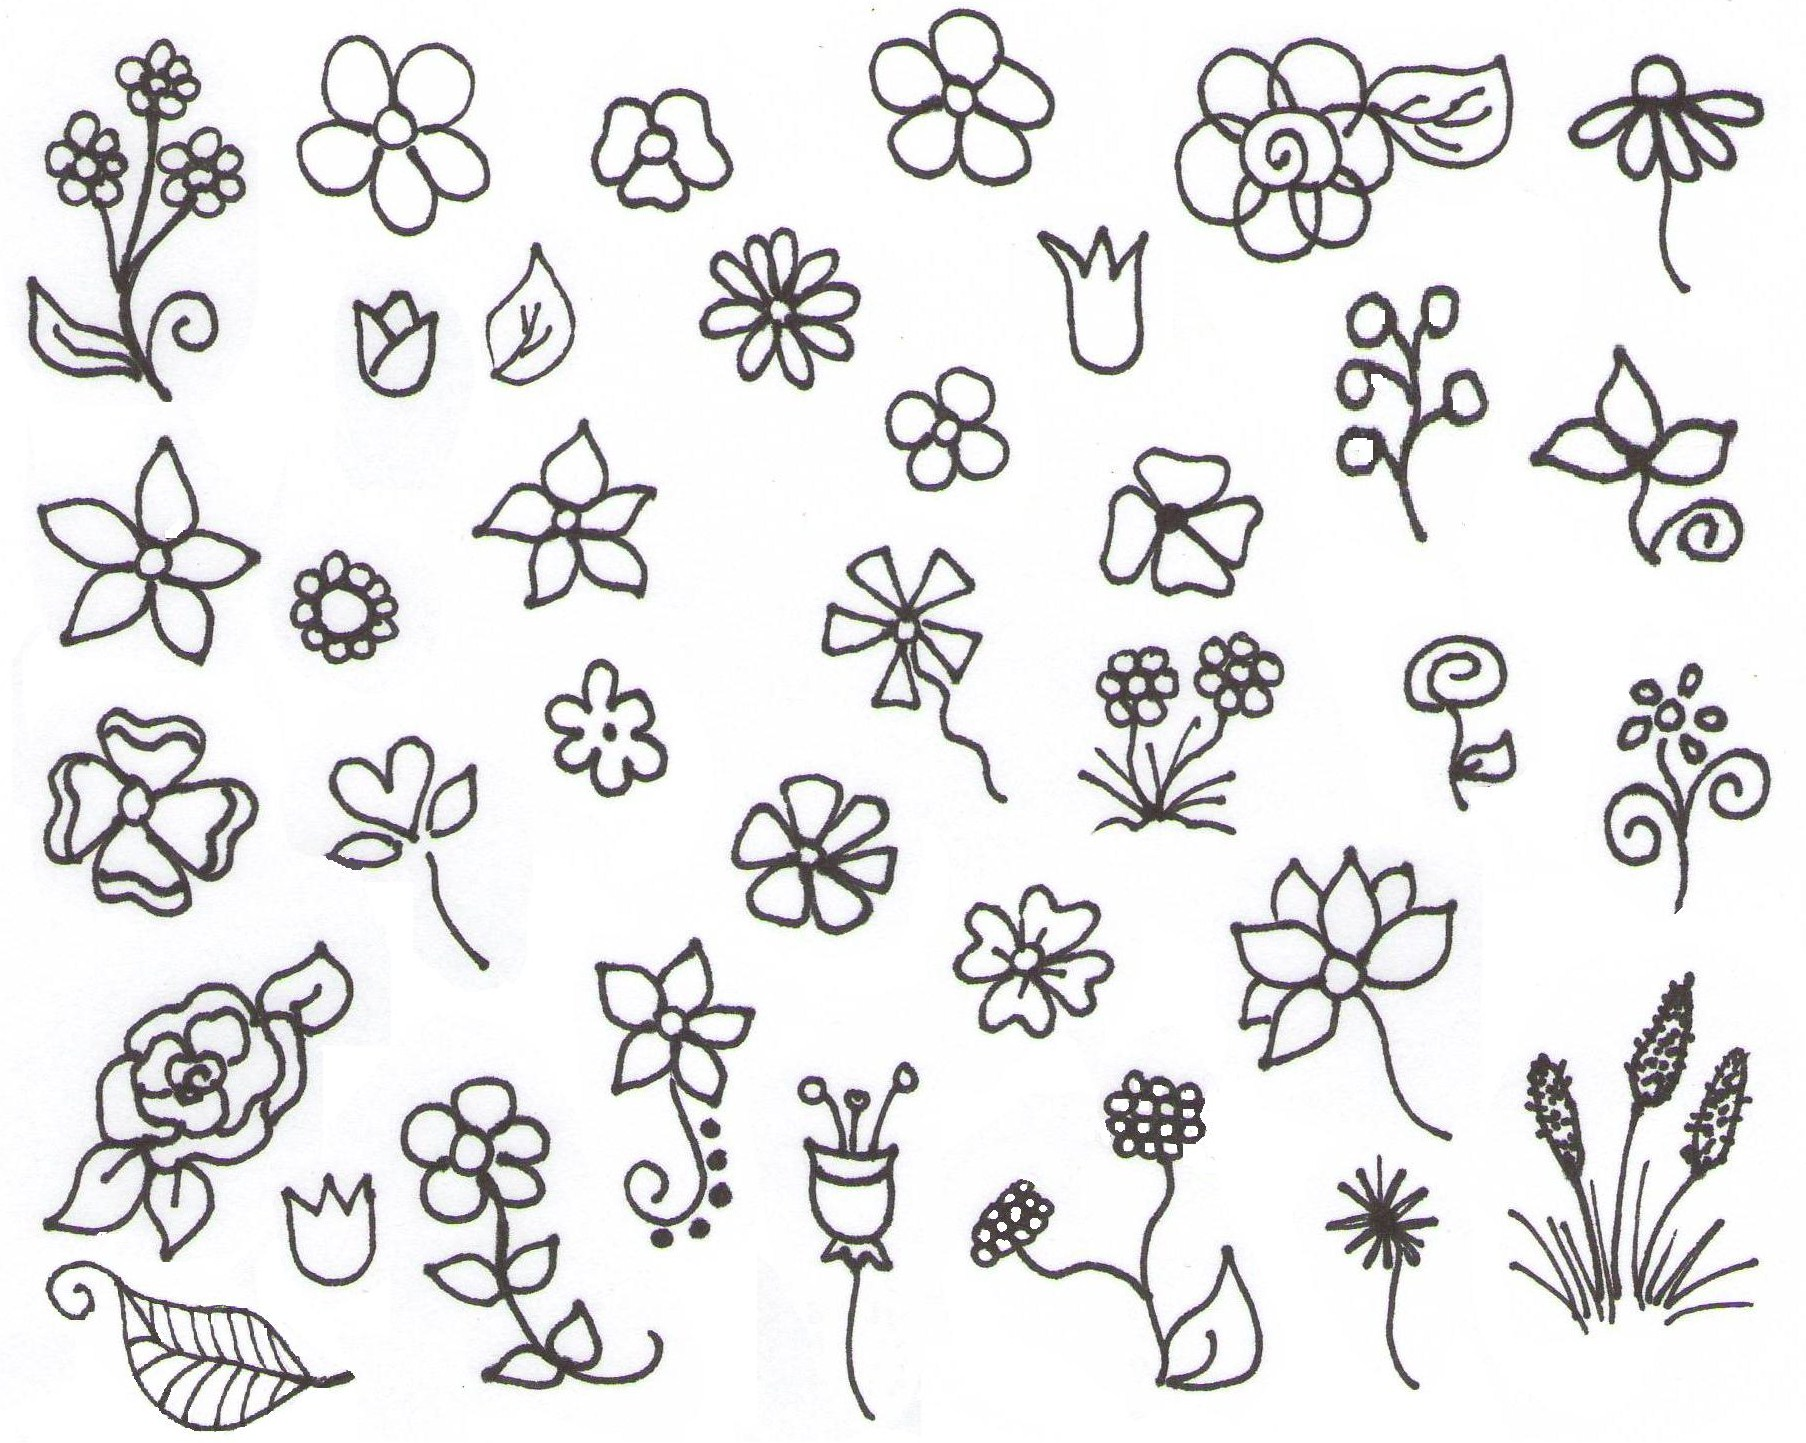 Flower Drawing For Beginners at GetDrawings | Free download